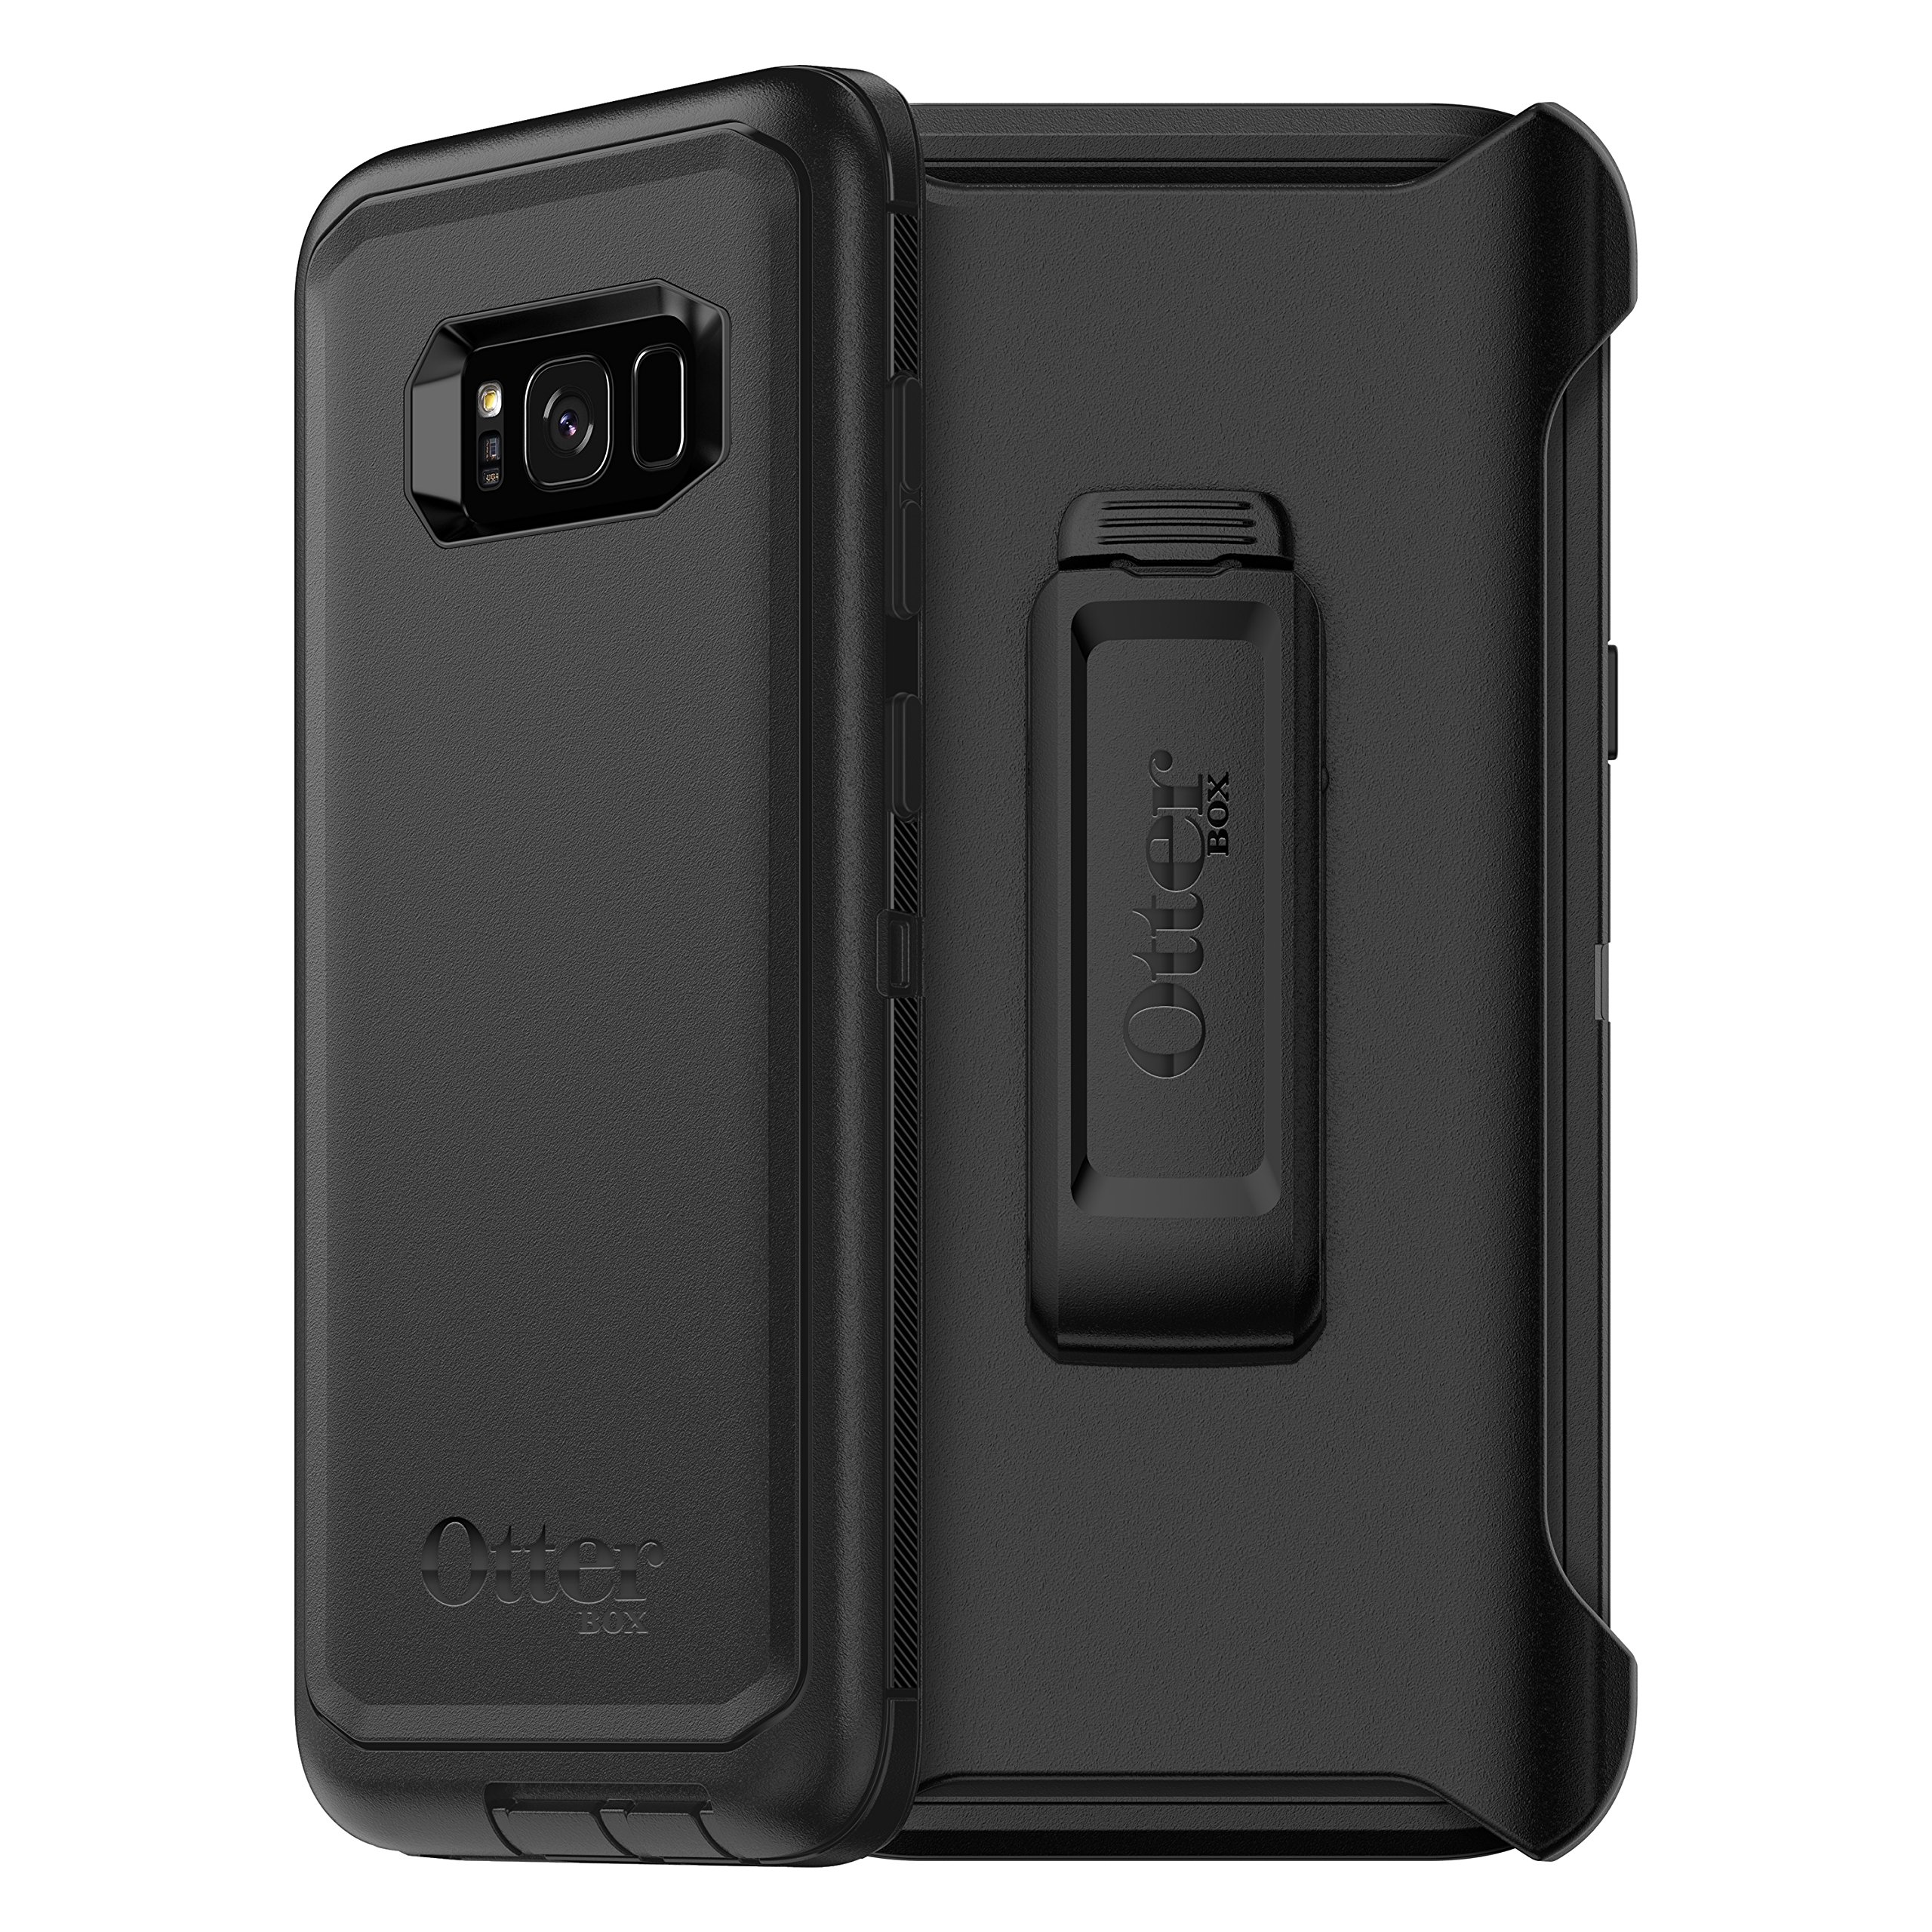 OtterBox Defender Series SCREENLESS Edition for Samsung Galaxy S8+ - Frustration Free Packaging - Black by OtterBox (Image #3)